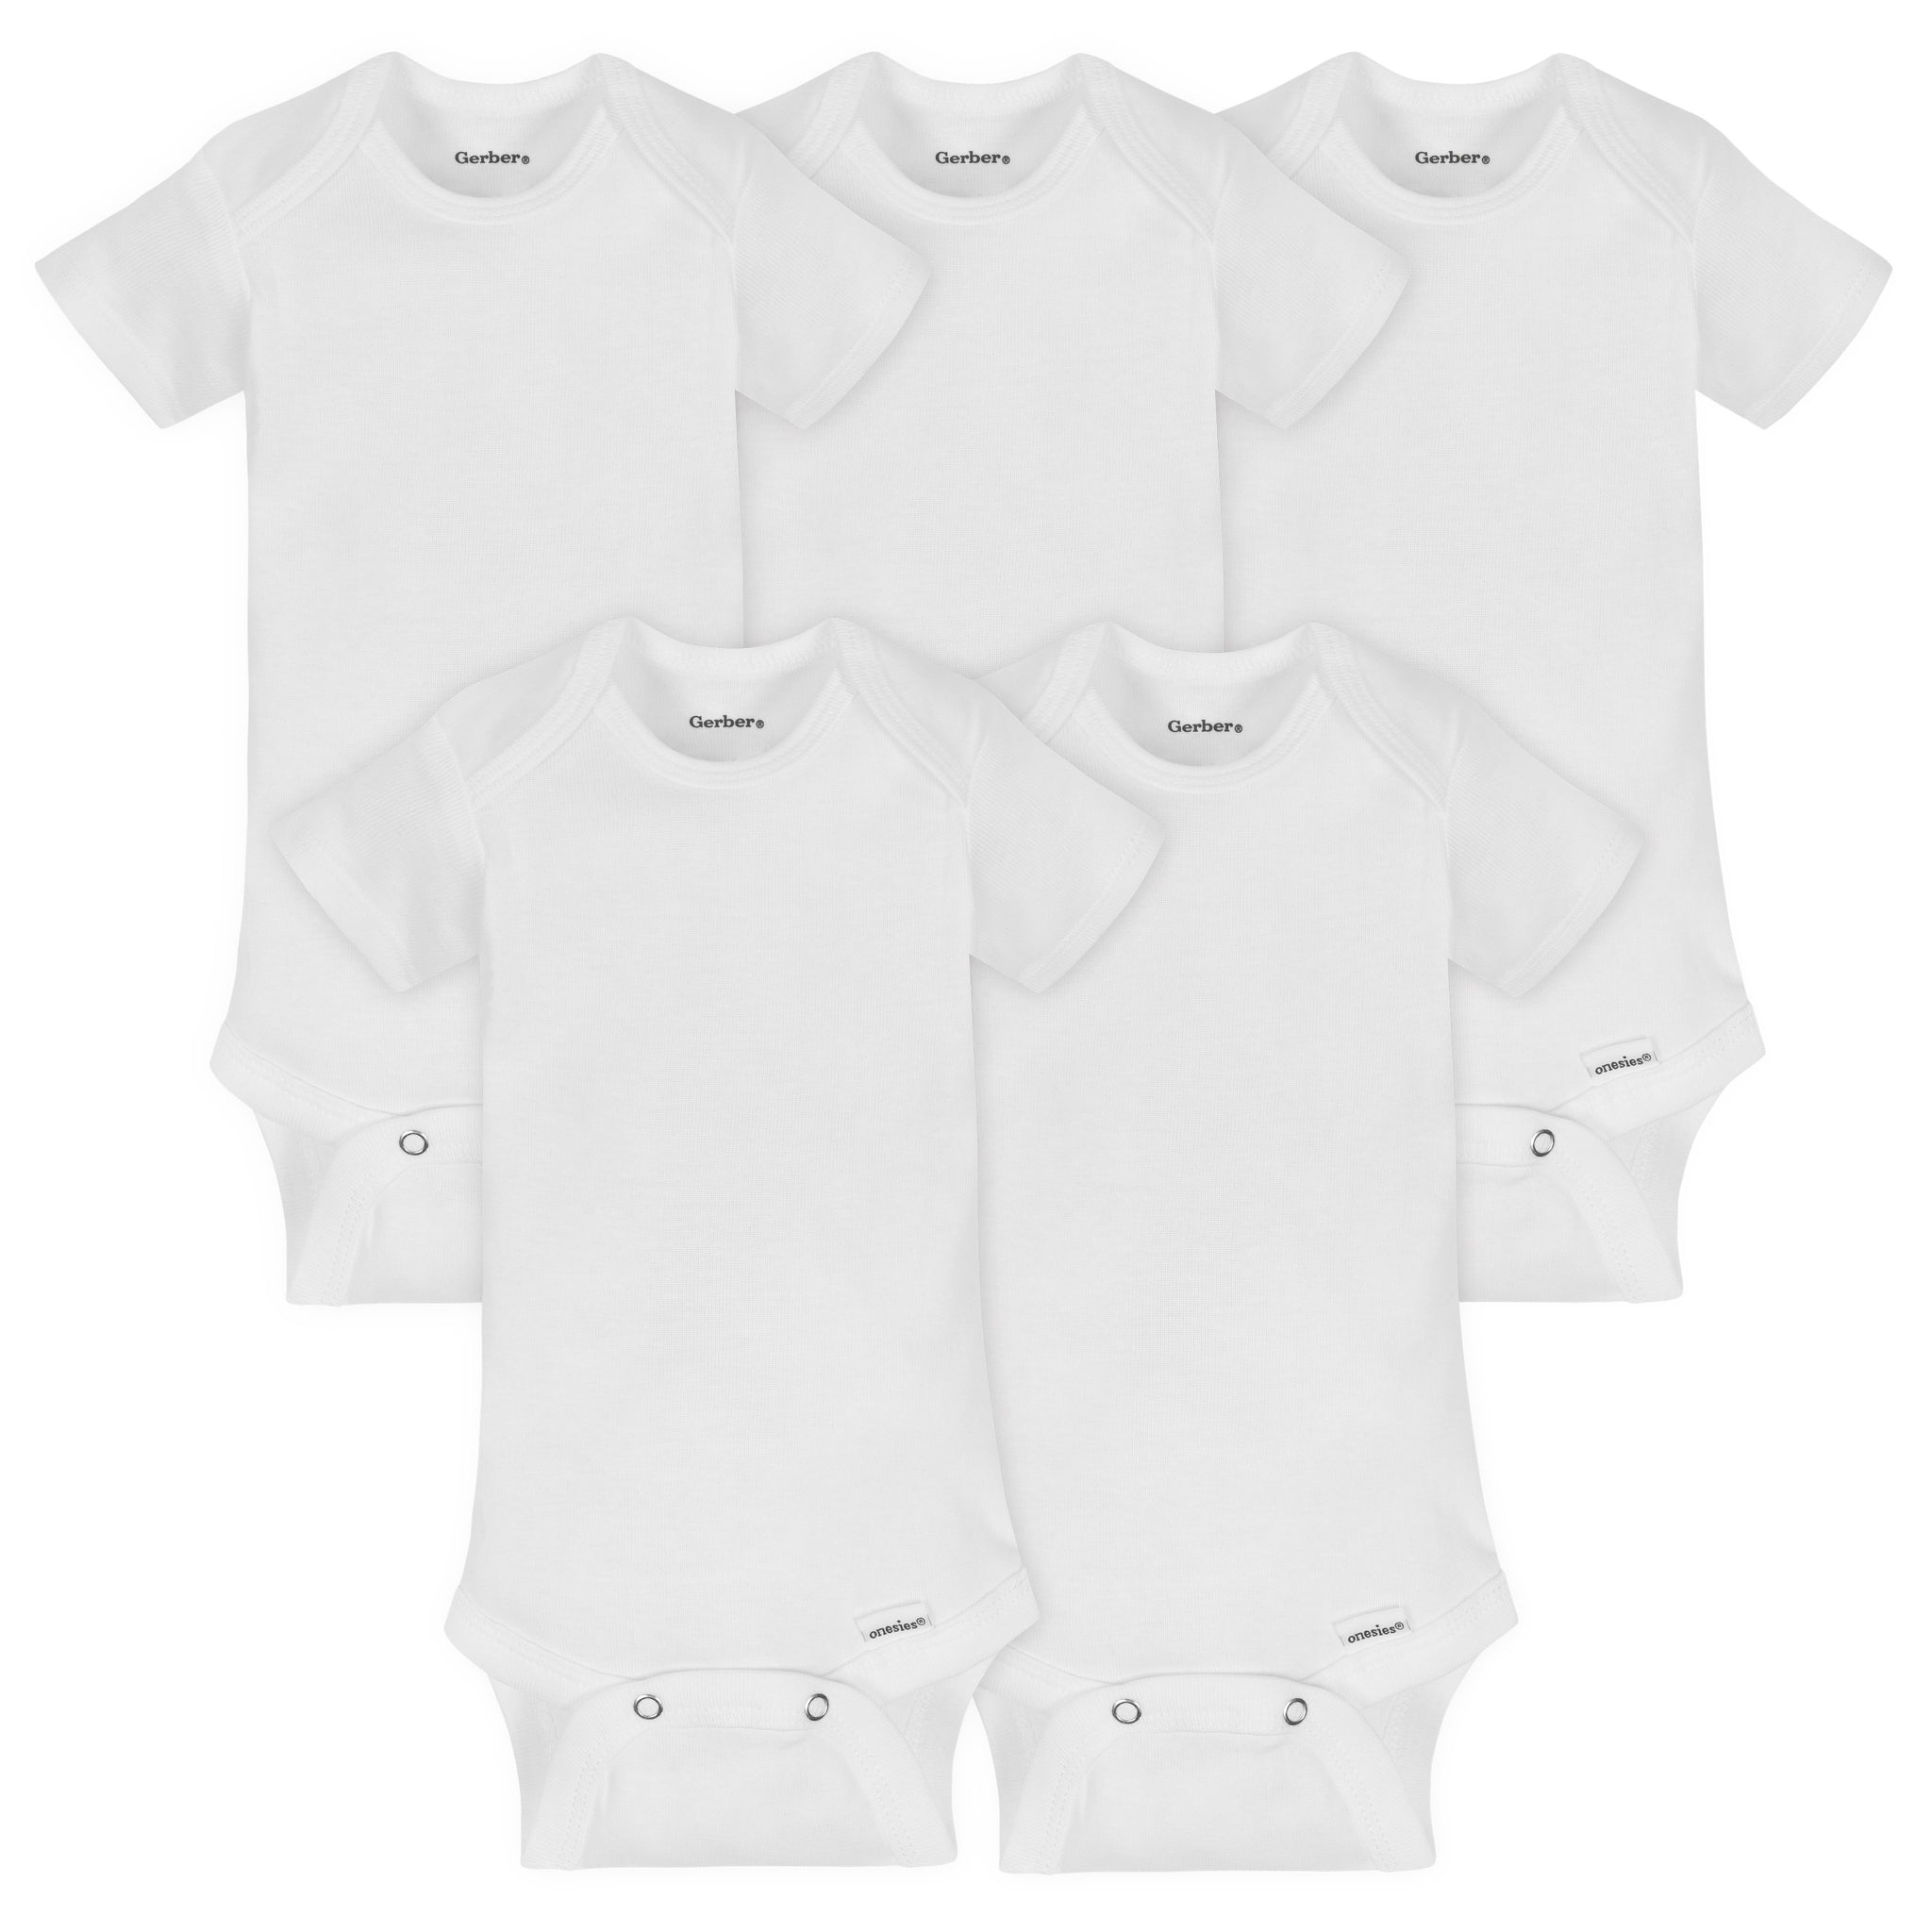 5-Pack White Organic Short-Sleeve Onesies Bodysuits